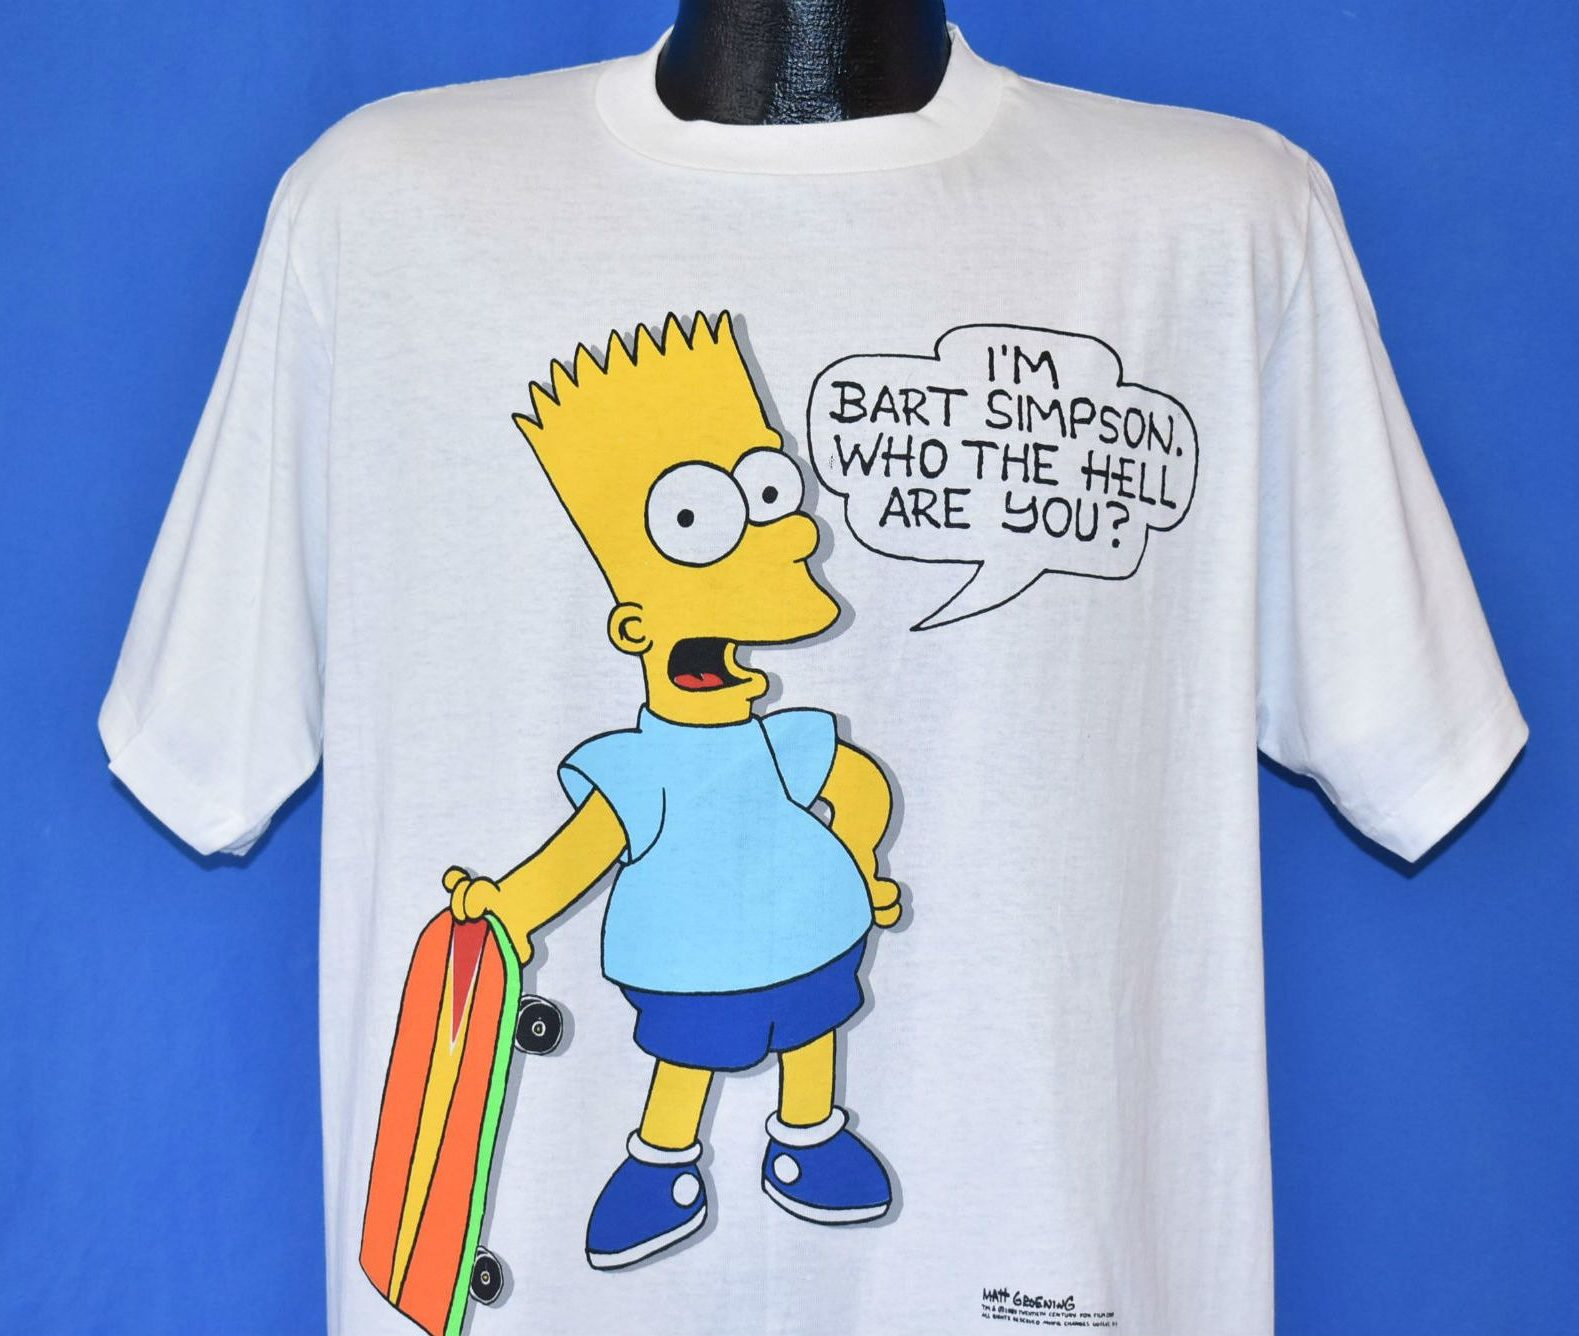 596283 captainsvintage e1605783136708 30 Things You Didn't Know About The Simpsons